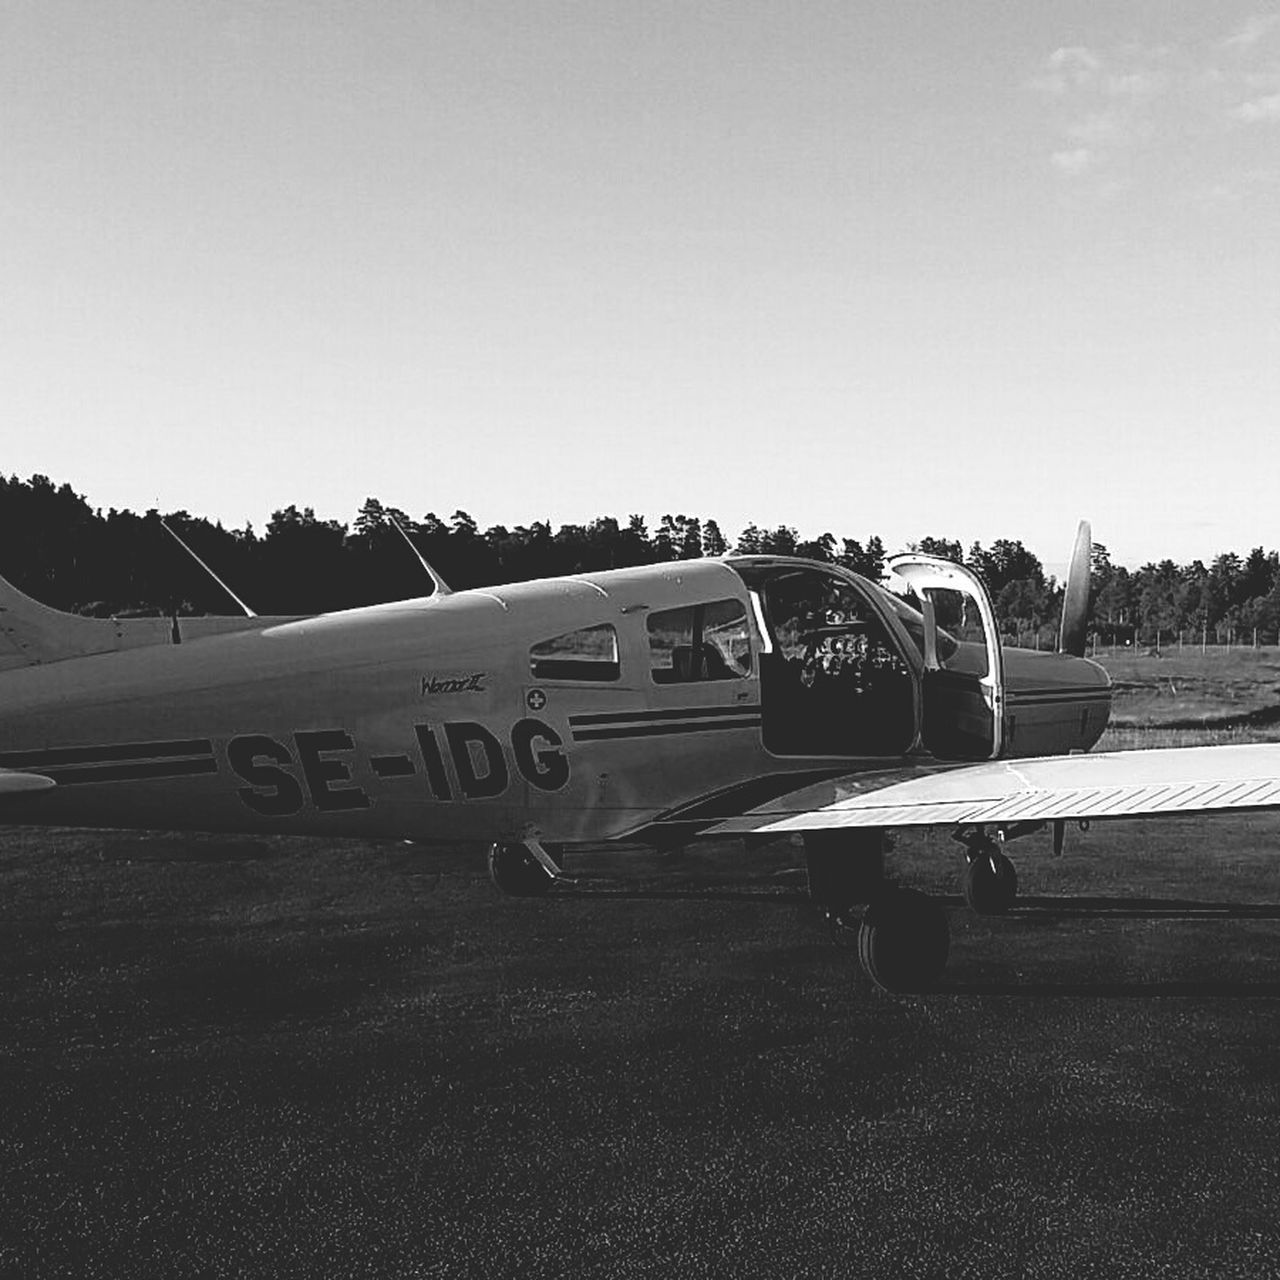 clear sky, transportation, sky, day, outdoors, old-fashioned, airplane, no people, tree, nature